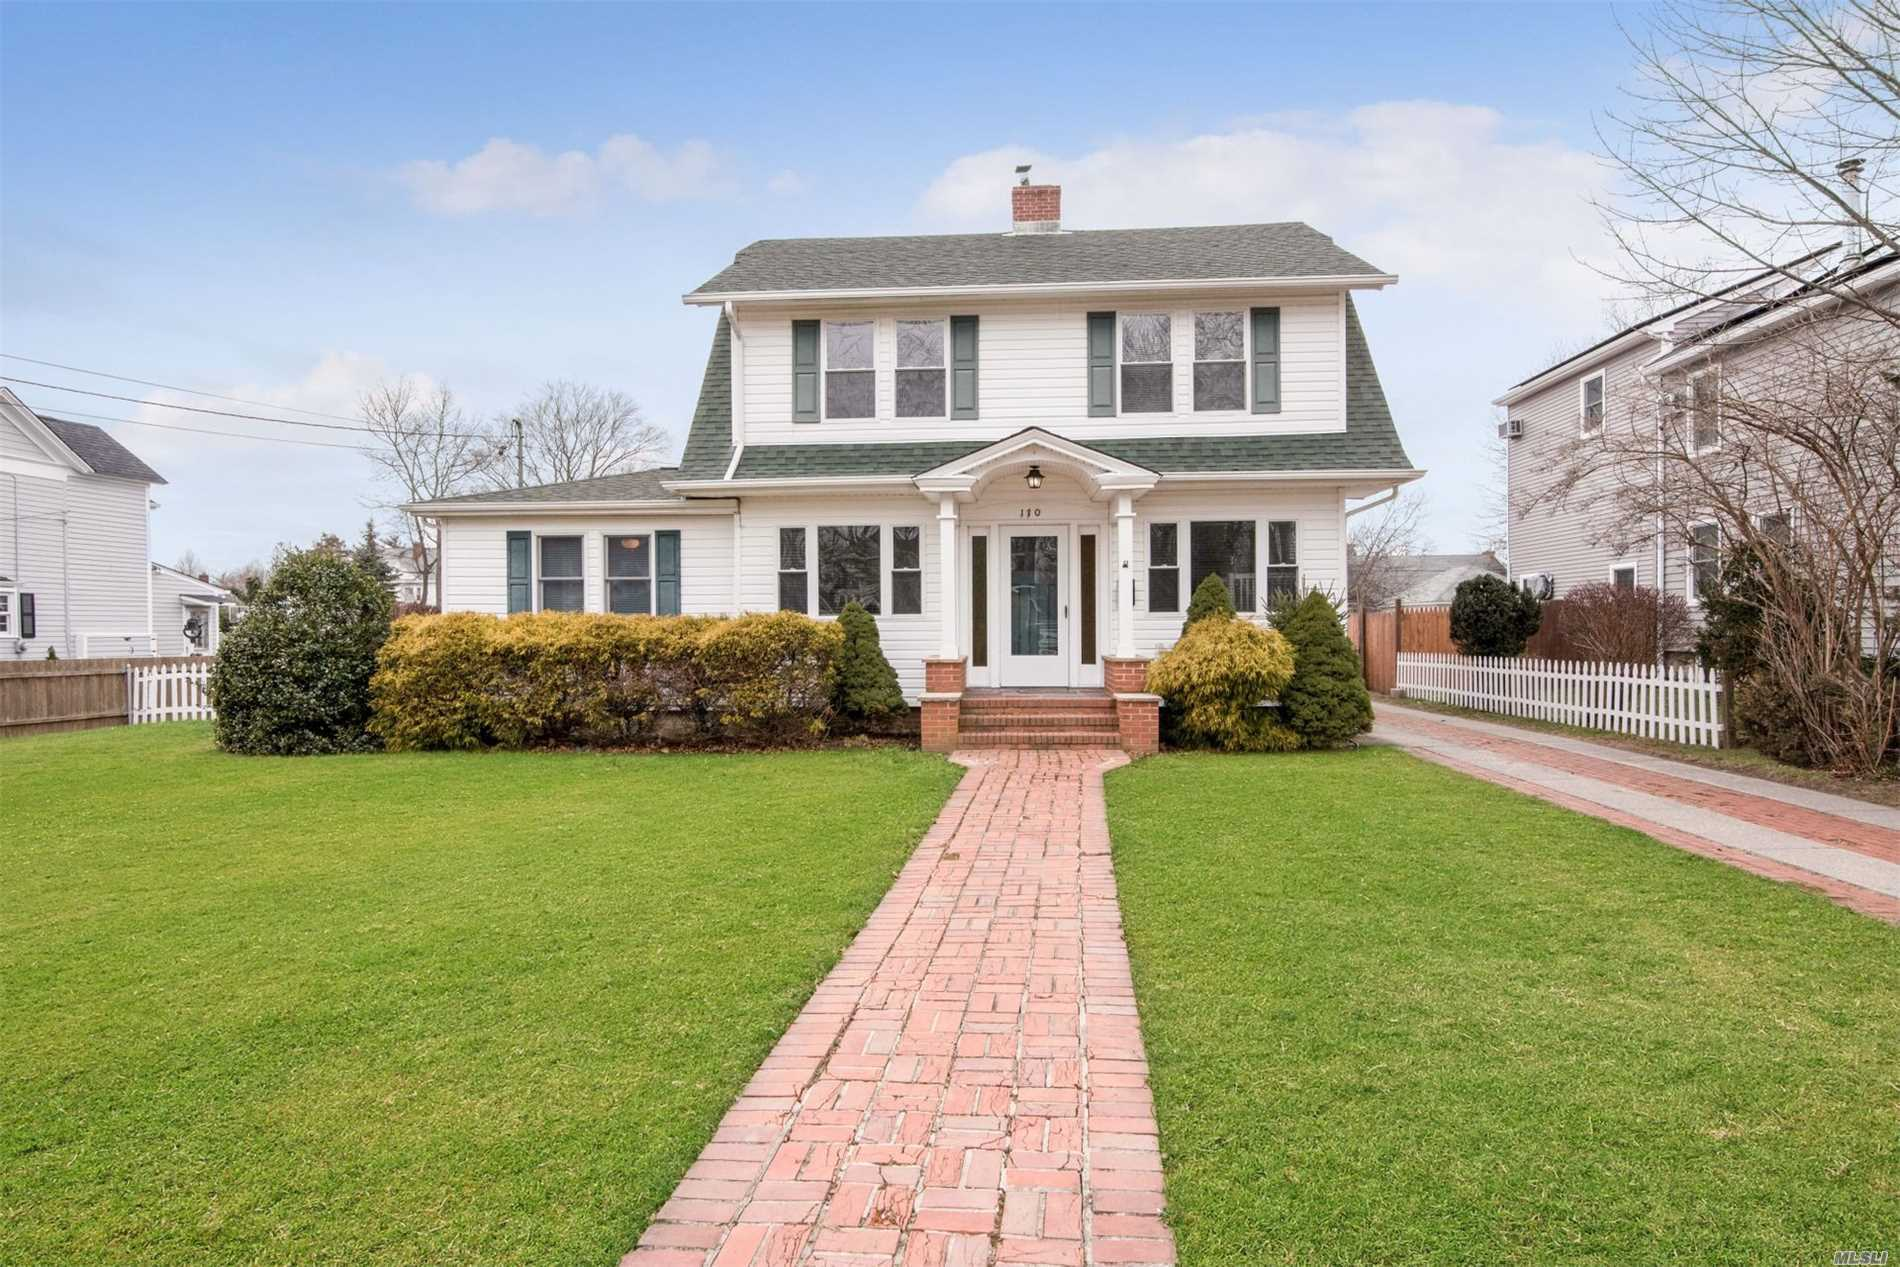 170 Jayne Ave - Patchogue, New York